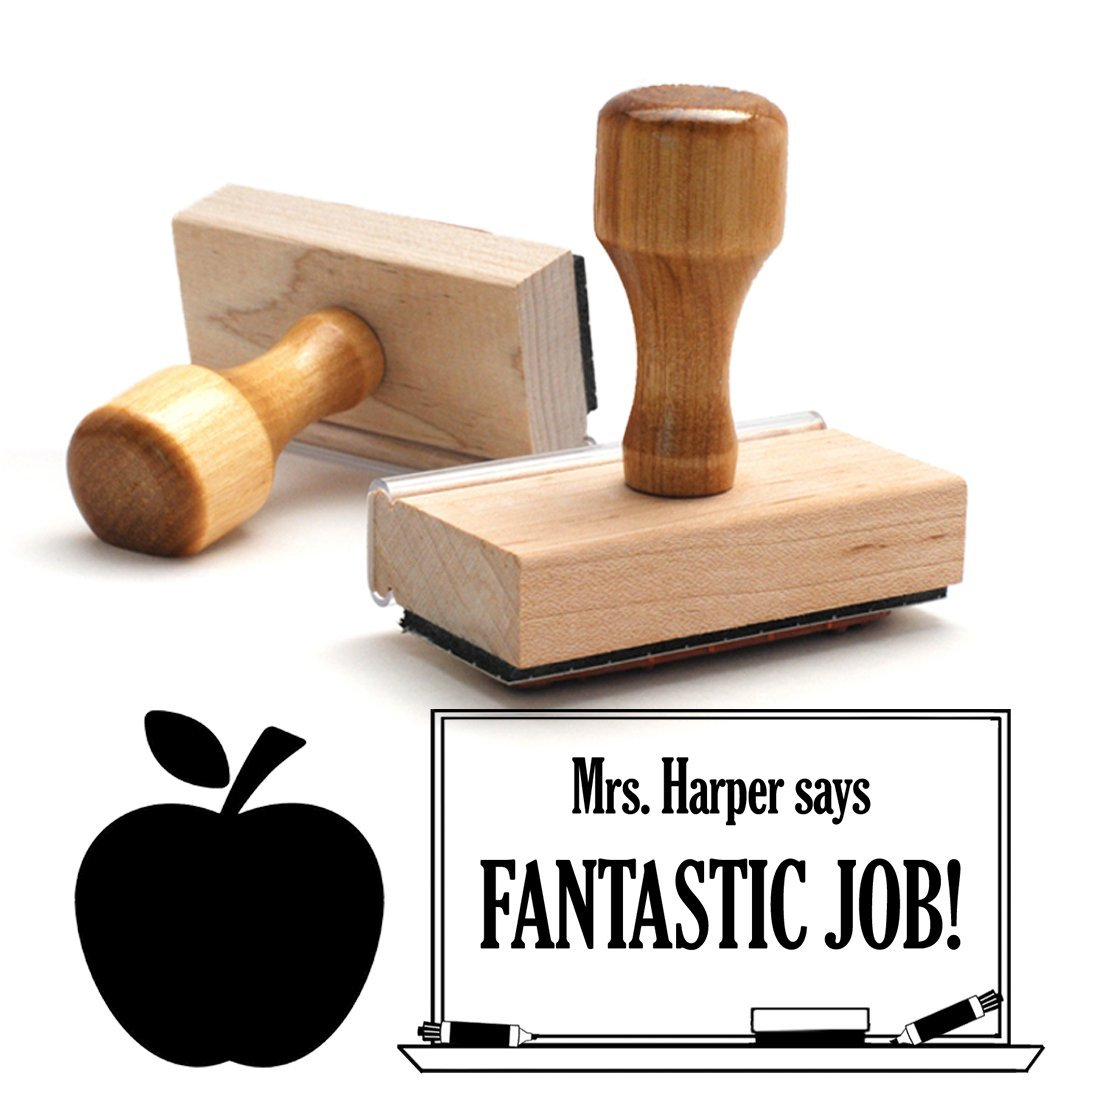 Wooden Handle, Apple Fantastic Job Teacher Stamp, Homework Personalized School Work Stamp, Large 2 Lines, Customized Unique Gift, Personal Classroom Stamper